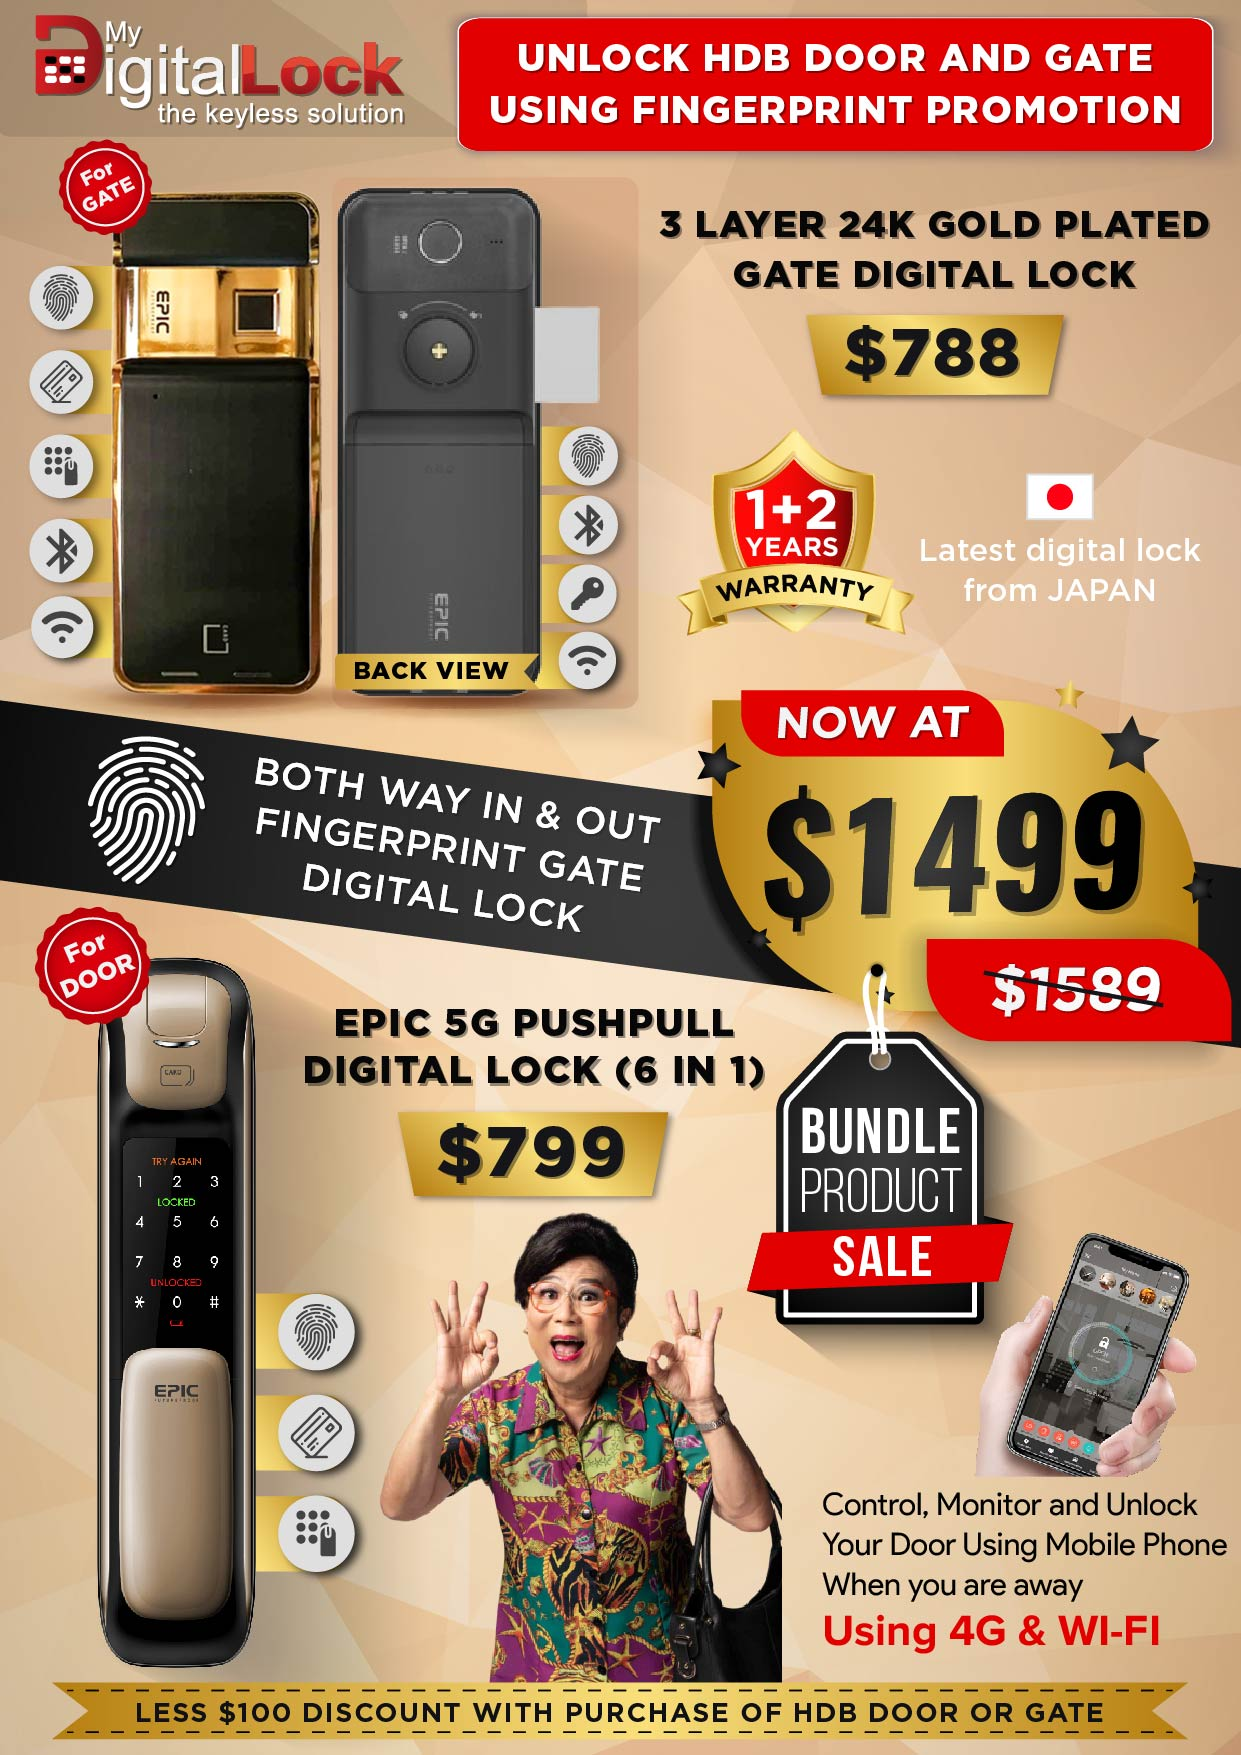 24K-Gold-Plate-Gate-and-5G-Push-Pull-Digital-Lock-Promotion-13